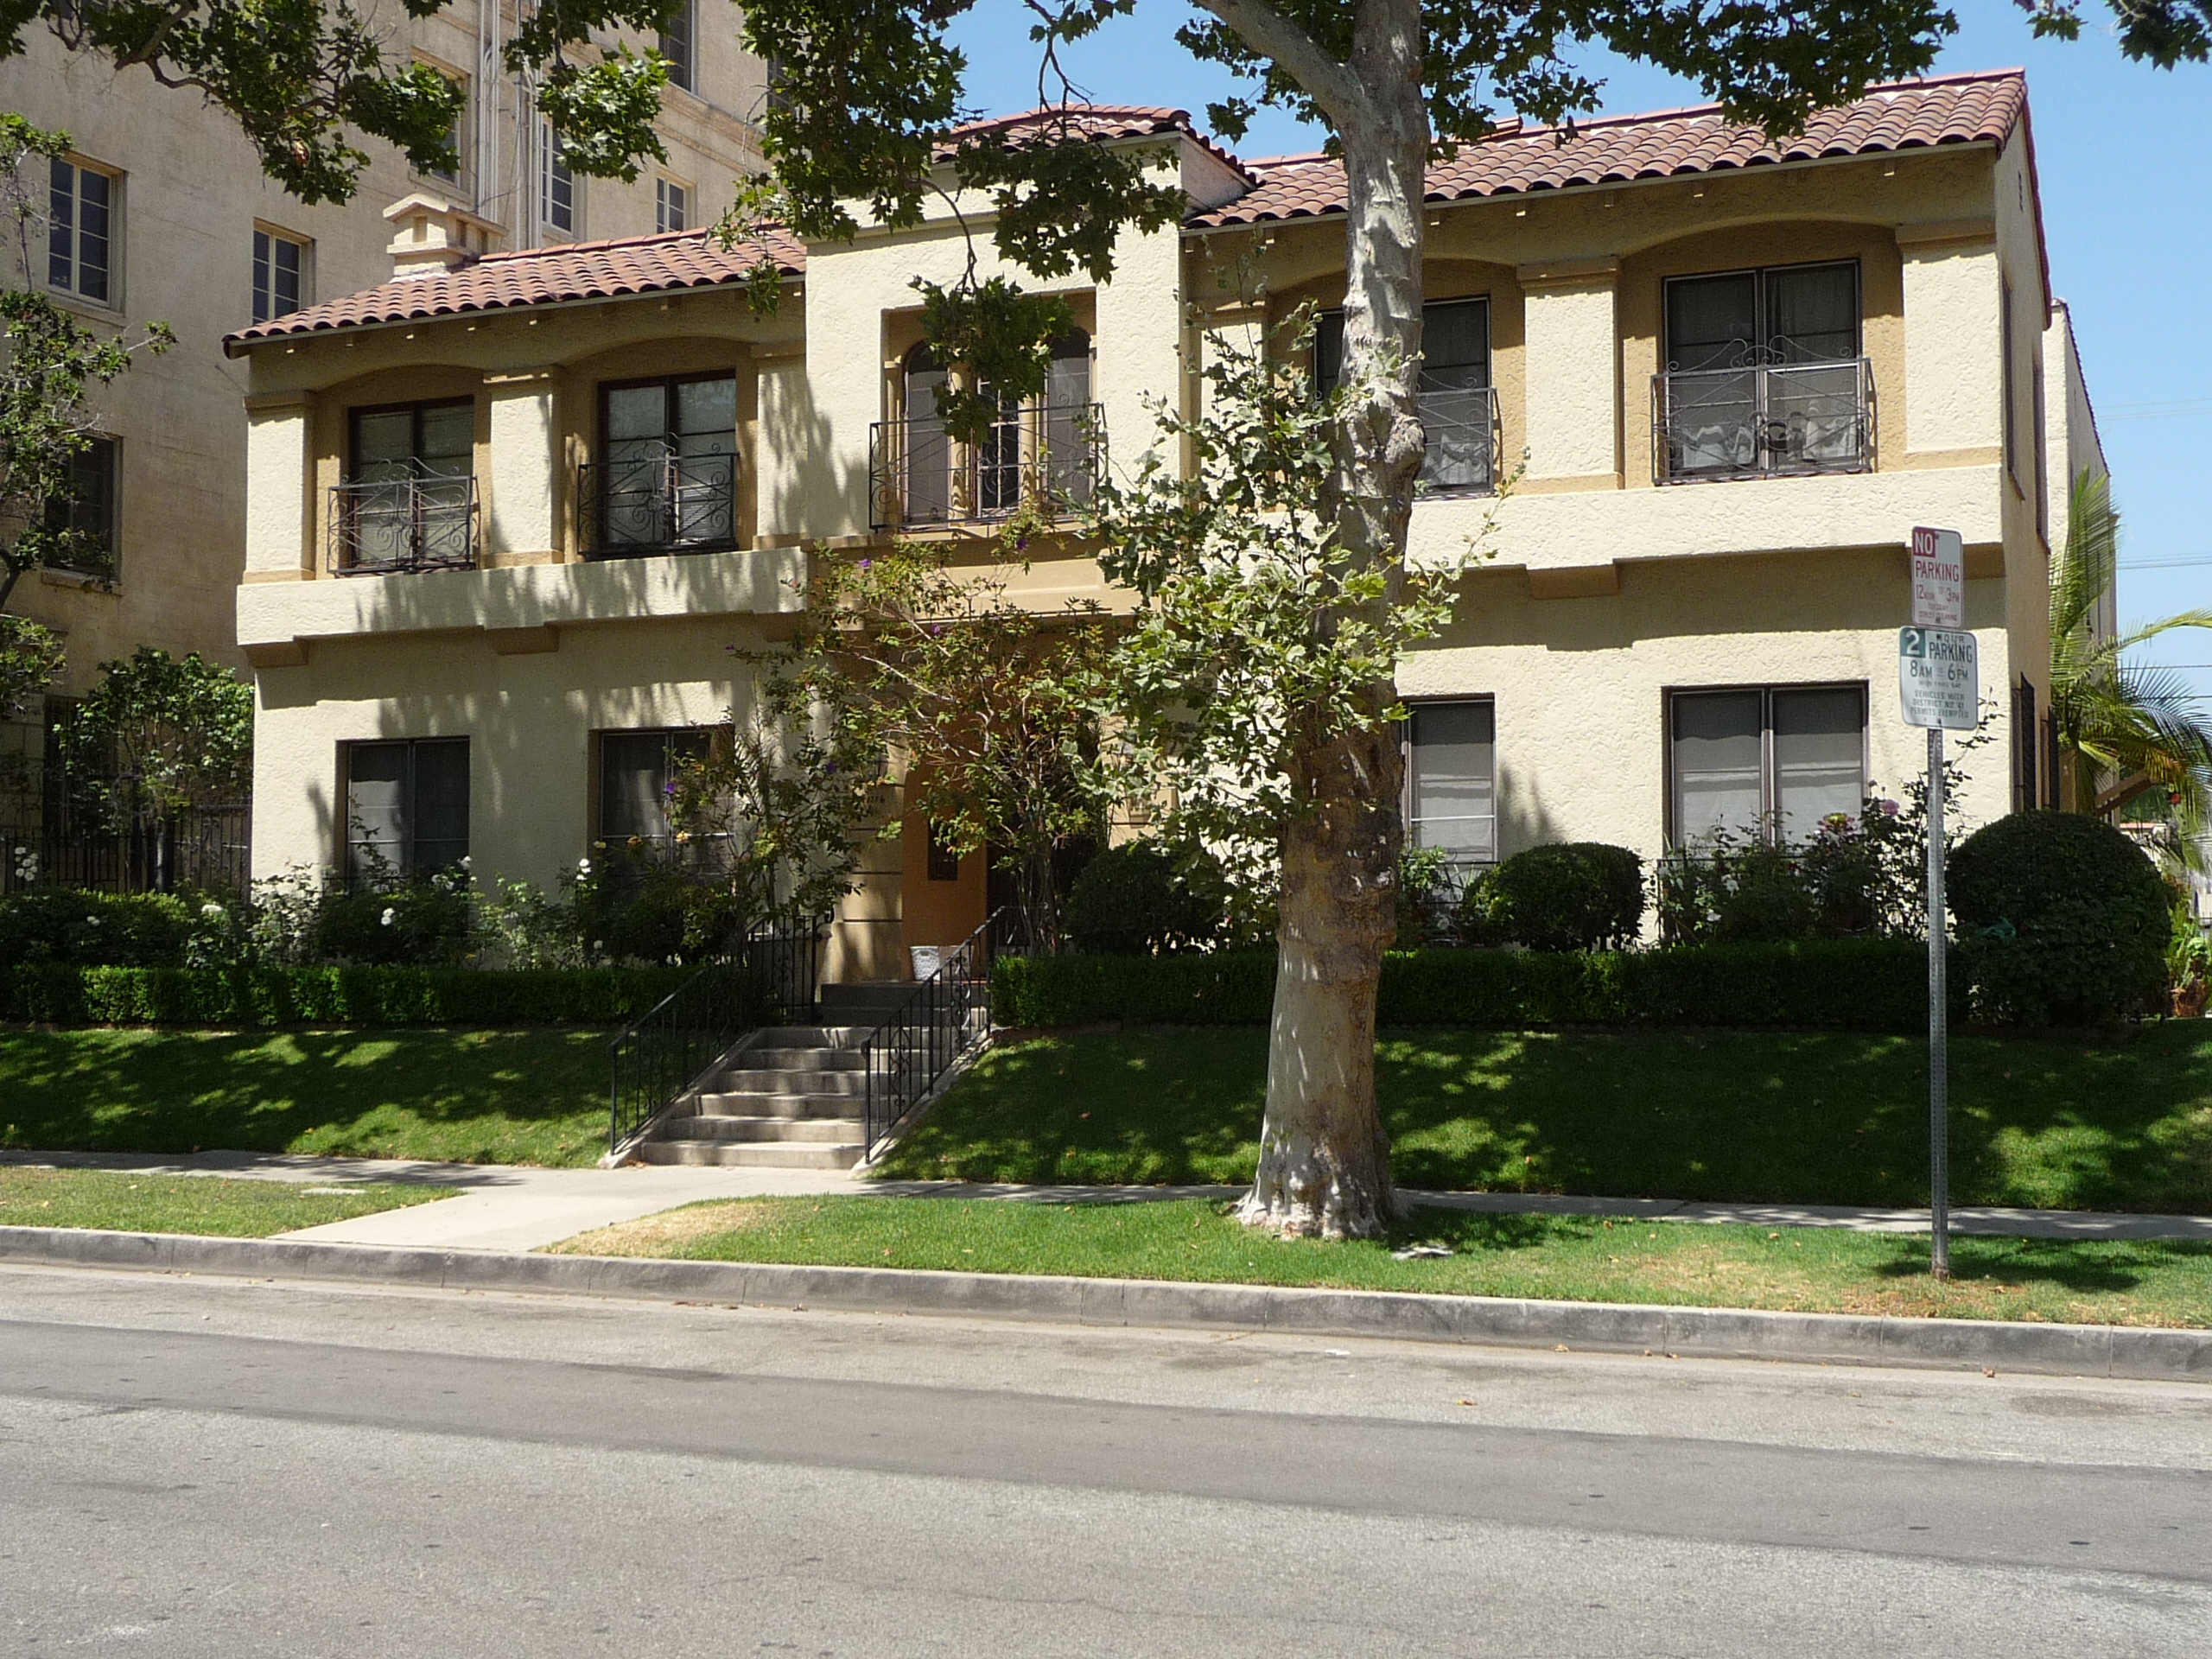 119 N SYCAMORE AVE - PHOTO